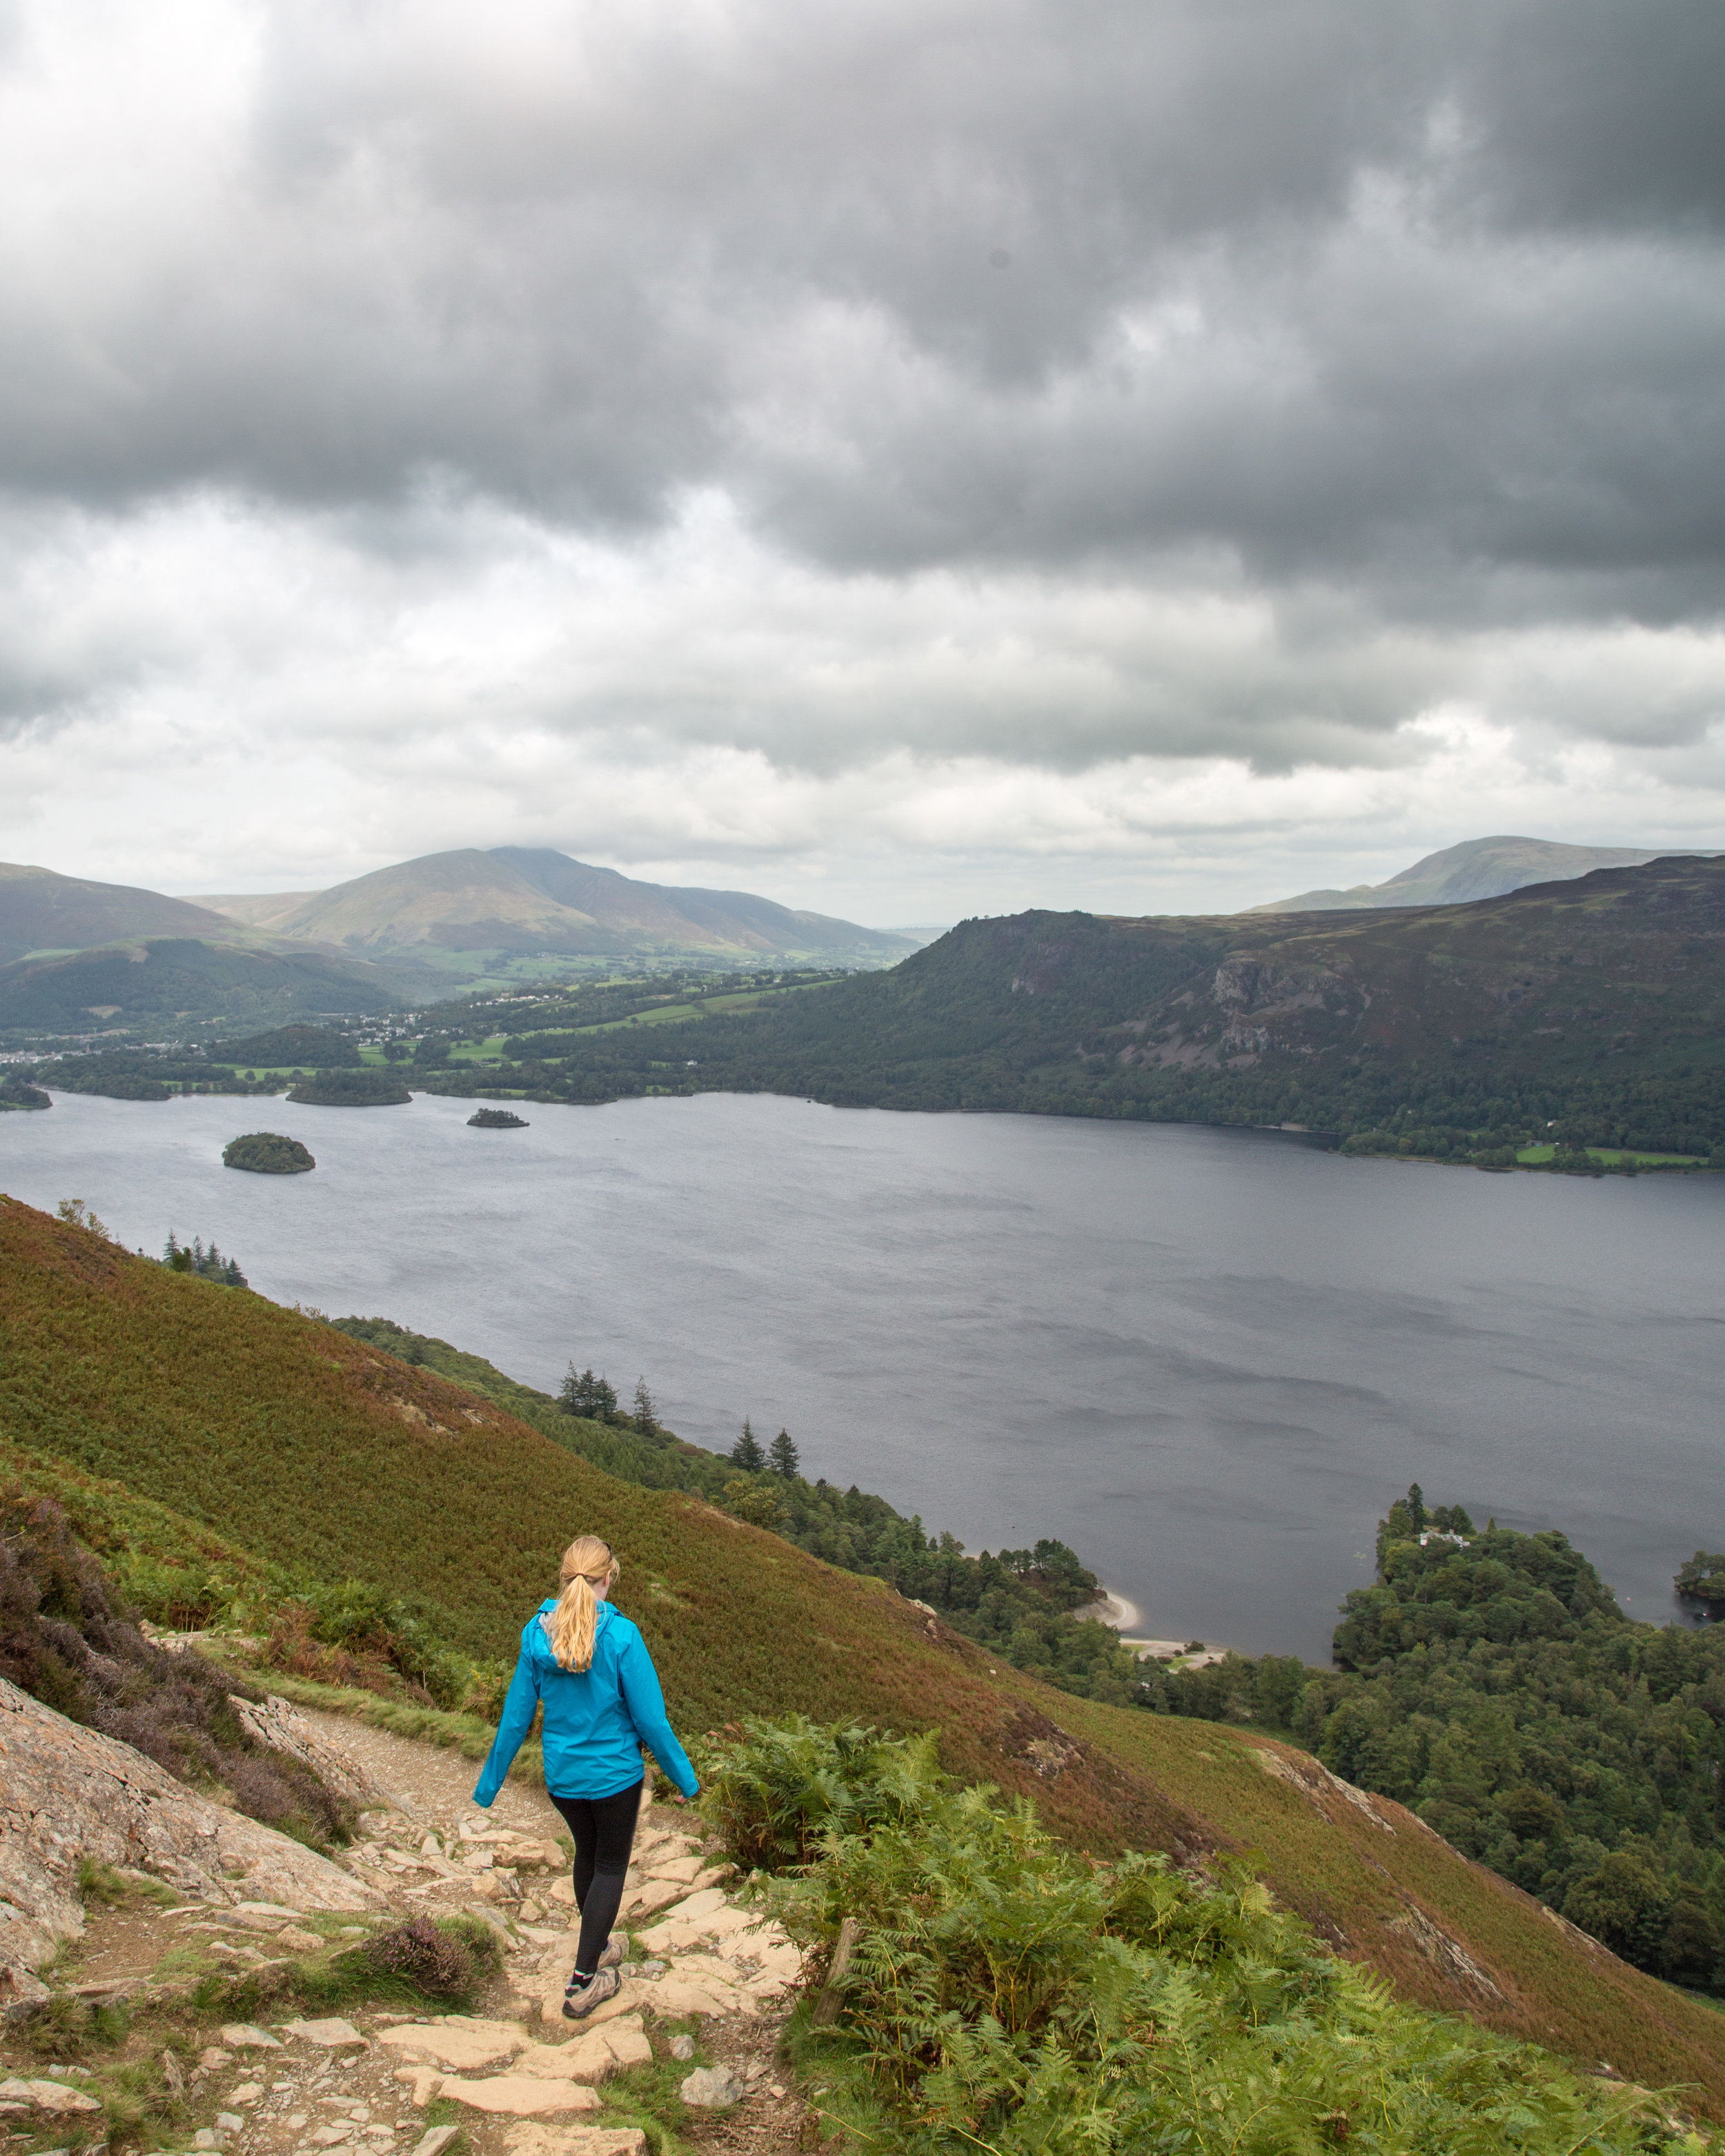 The hike down Cat Bells